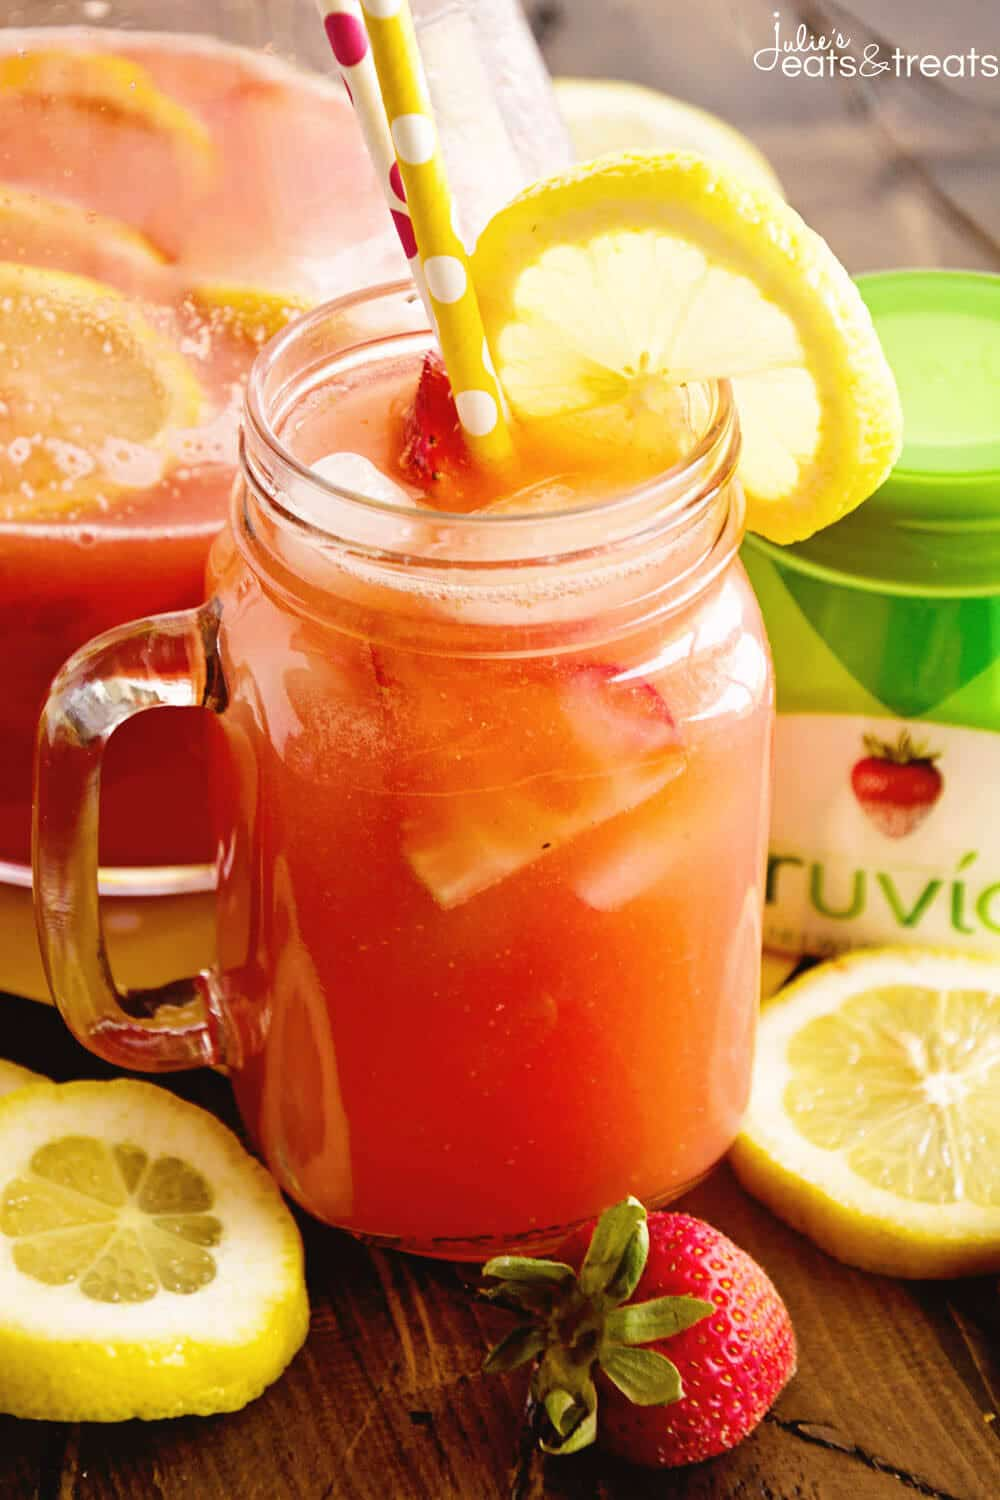 Skinny Spiked Strawberry Lemonade ~ Delicious Strawberry Lemonade Recipe Sweetened with Truvia and Spiked with Strawberry Lemonade Vodka!